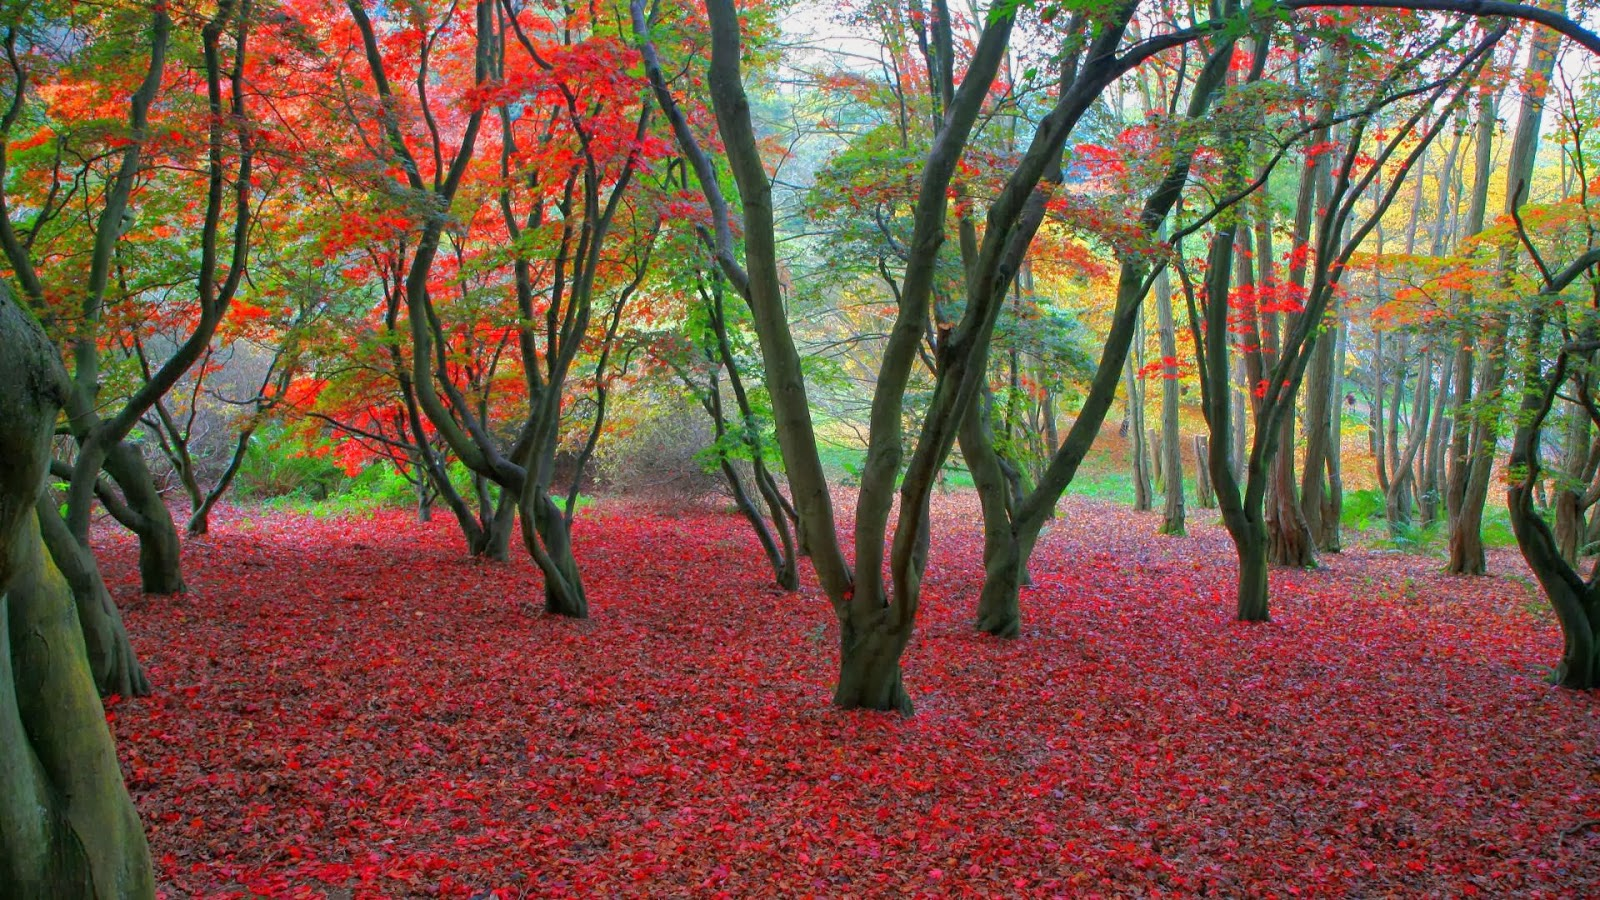 HD Wallpapers 1080p Nature Autumn